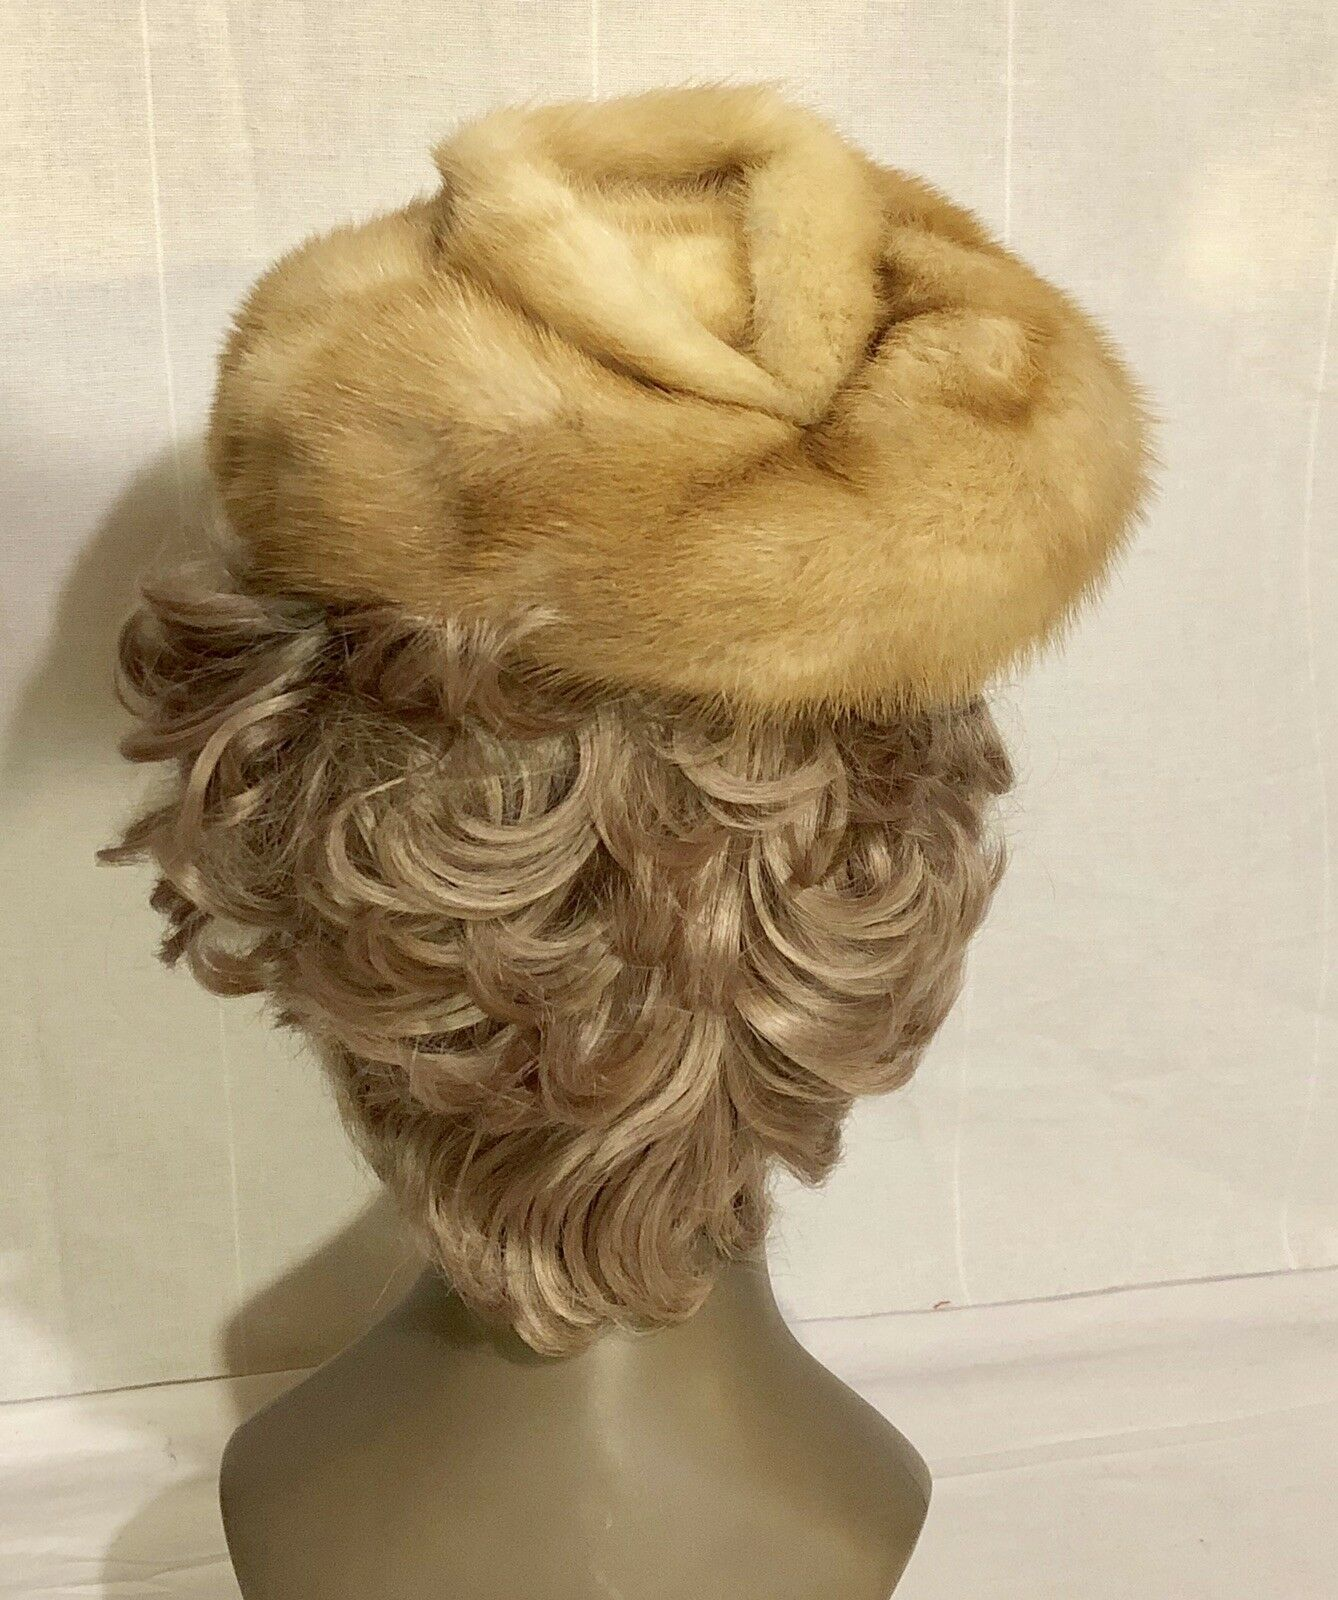 Vintage 1950's Women's Blonde Mink Beret Hat  -Lined-w/ Donut Shaped Top!